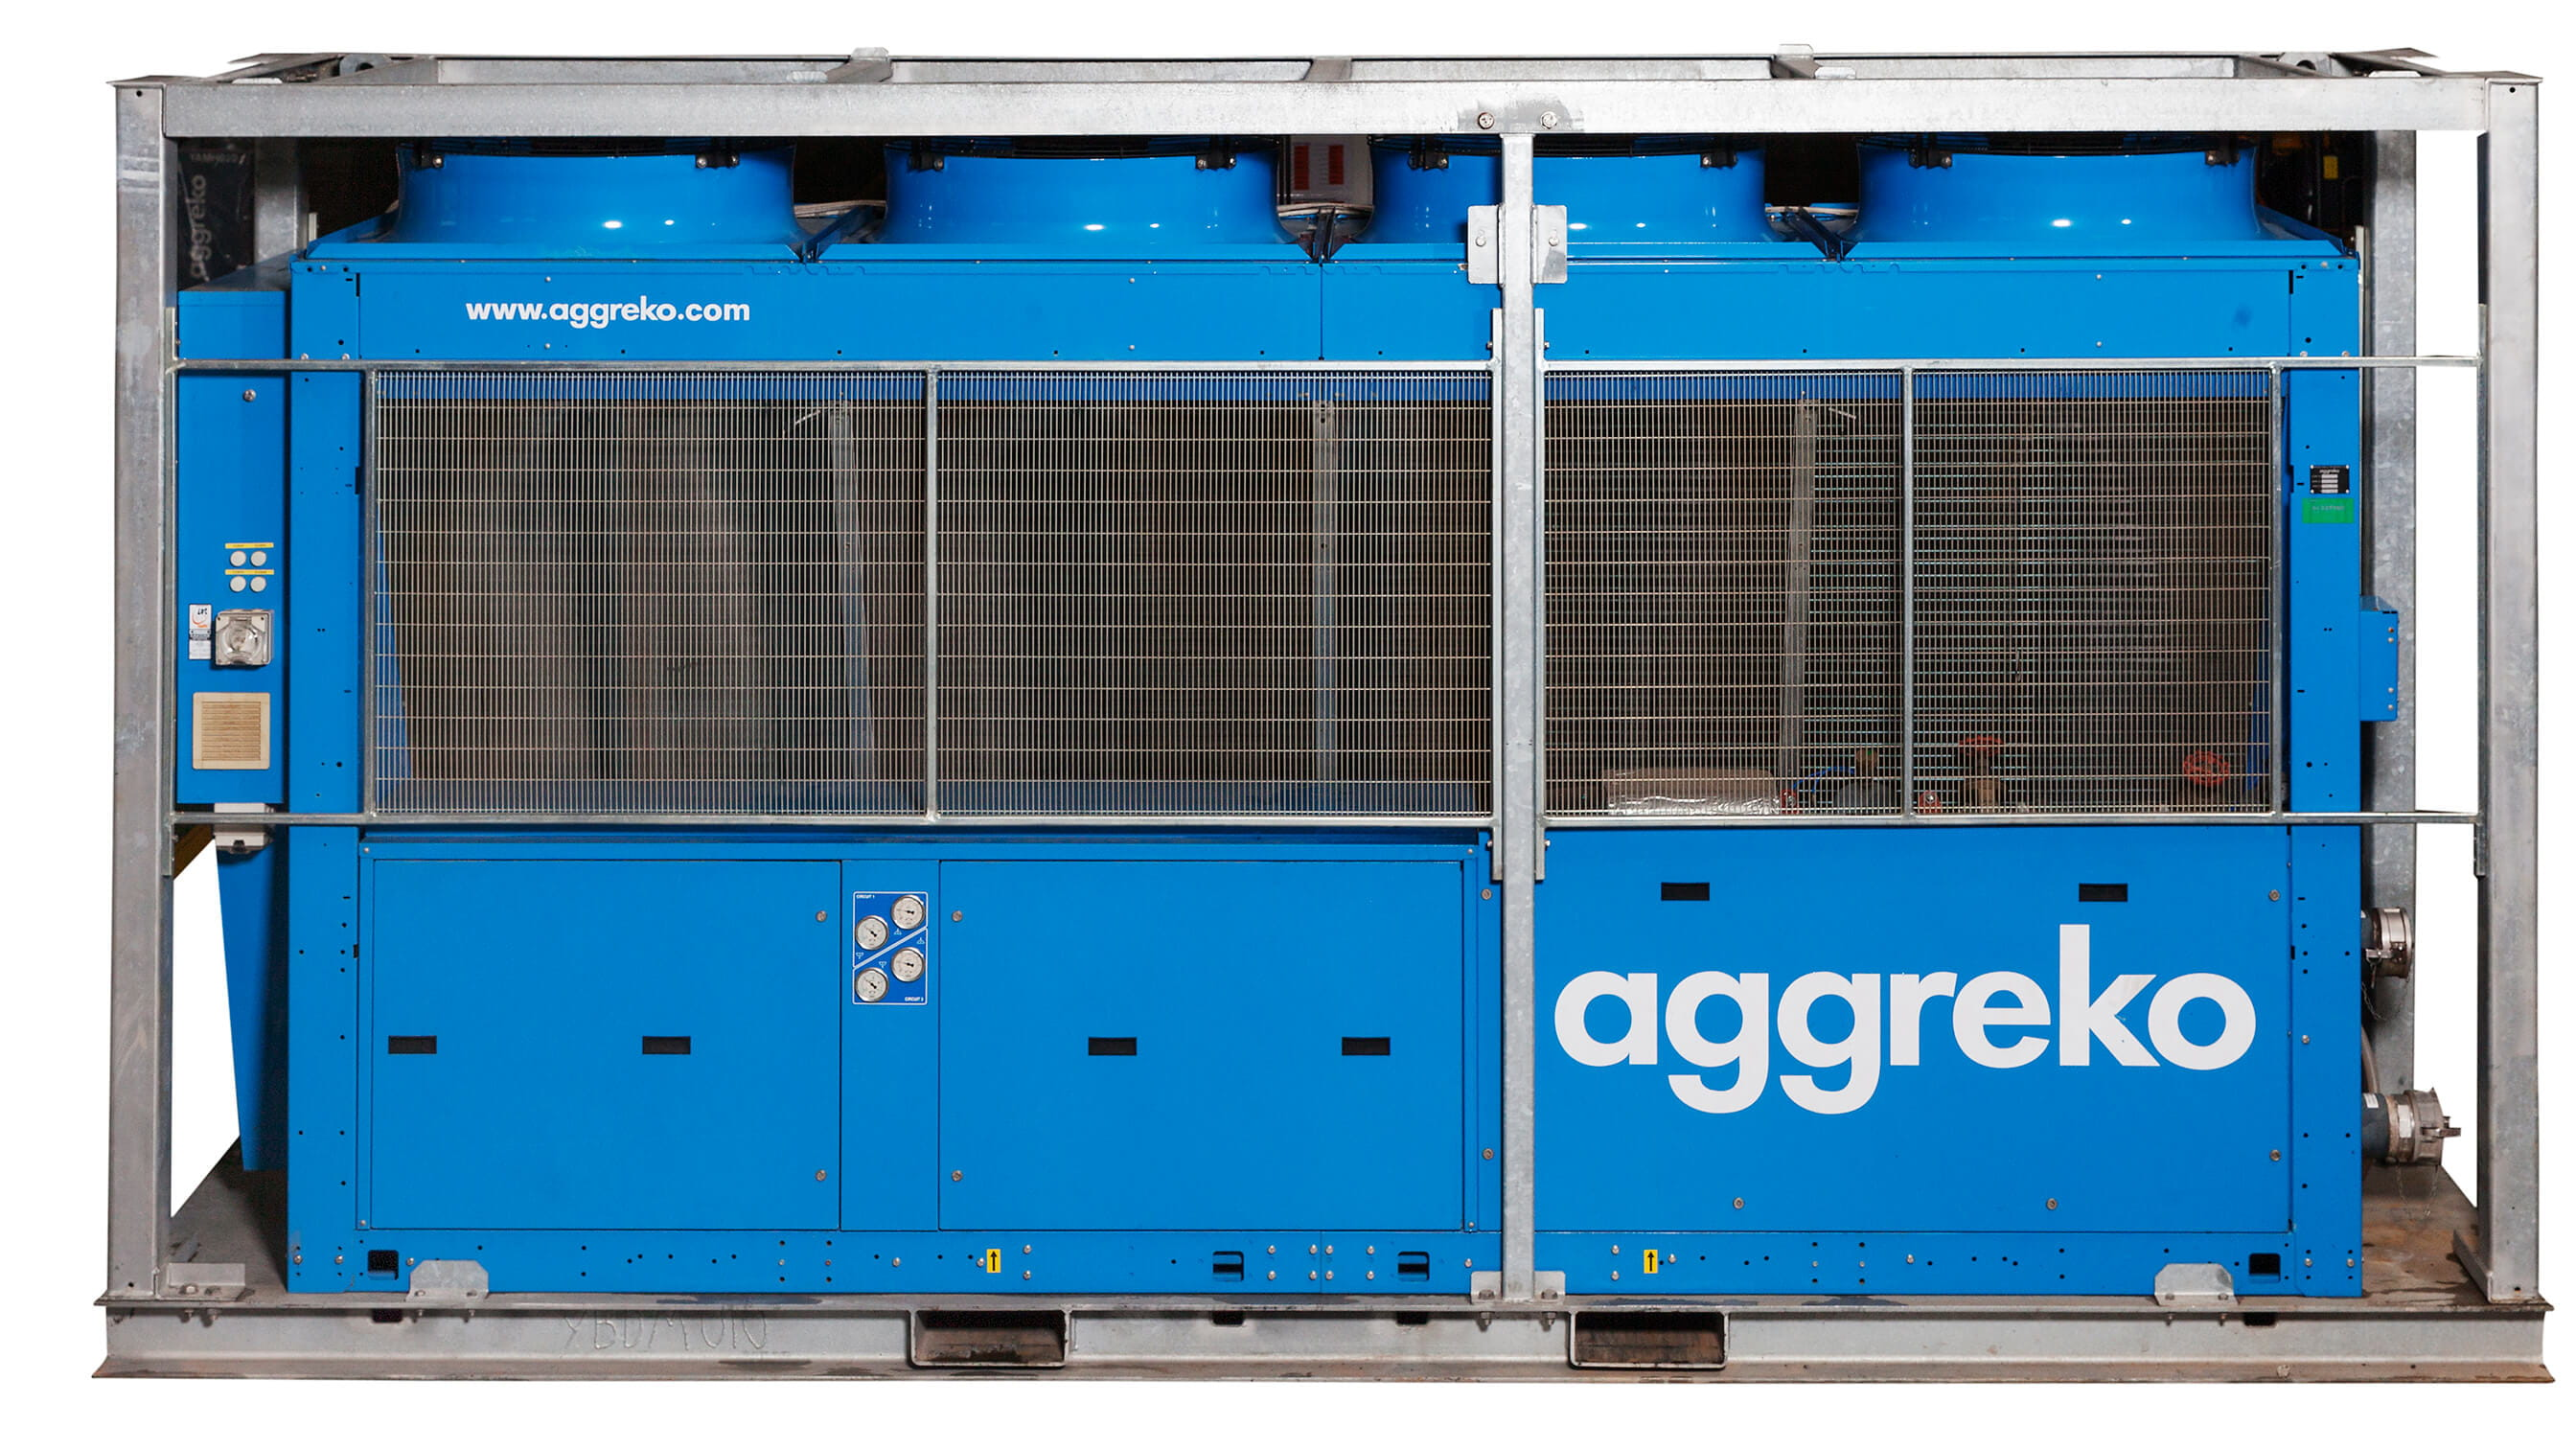 Aggreko Chiller Equipment